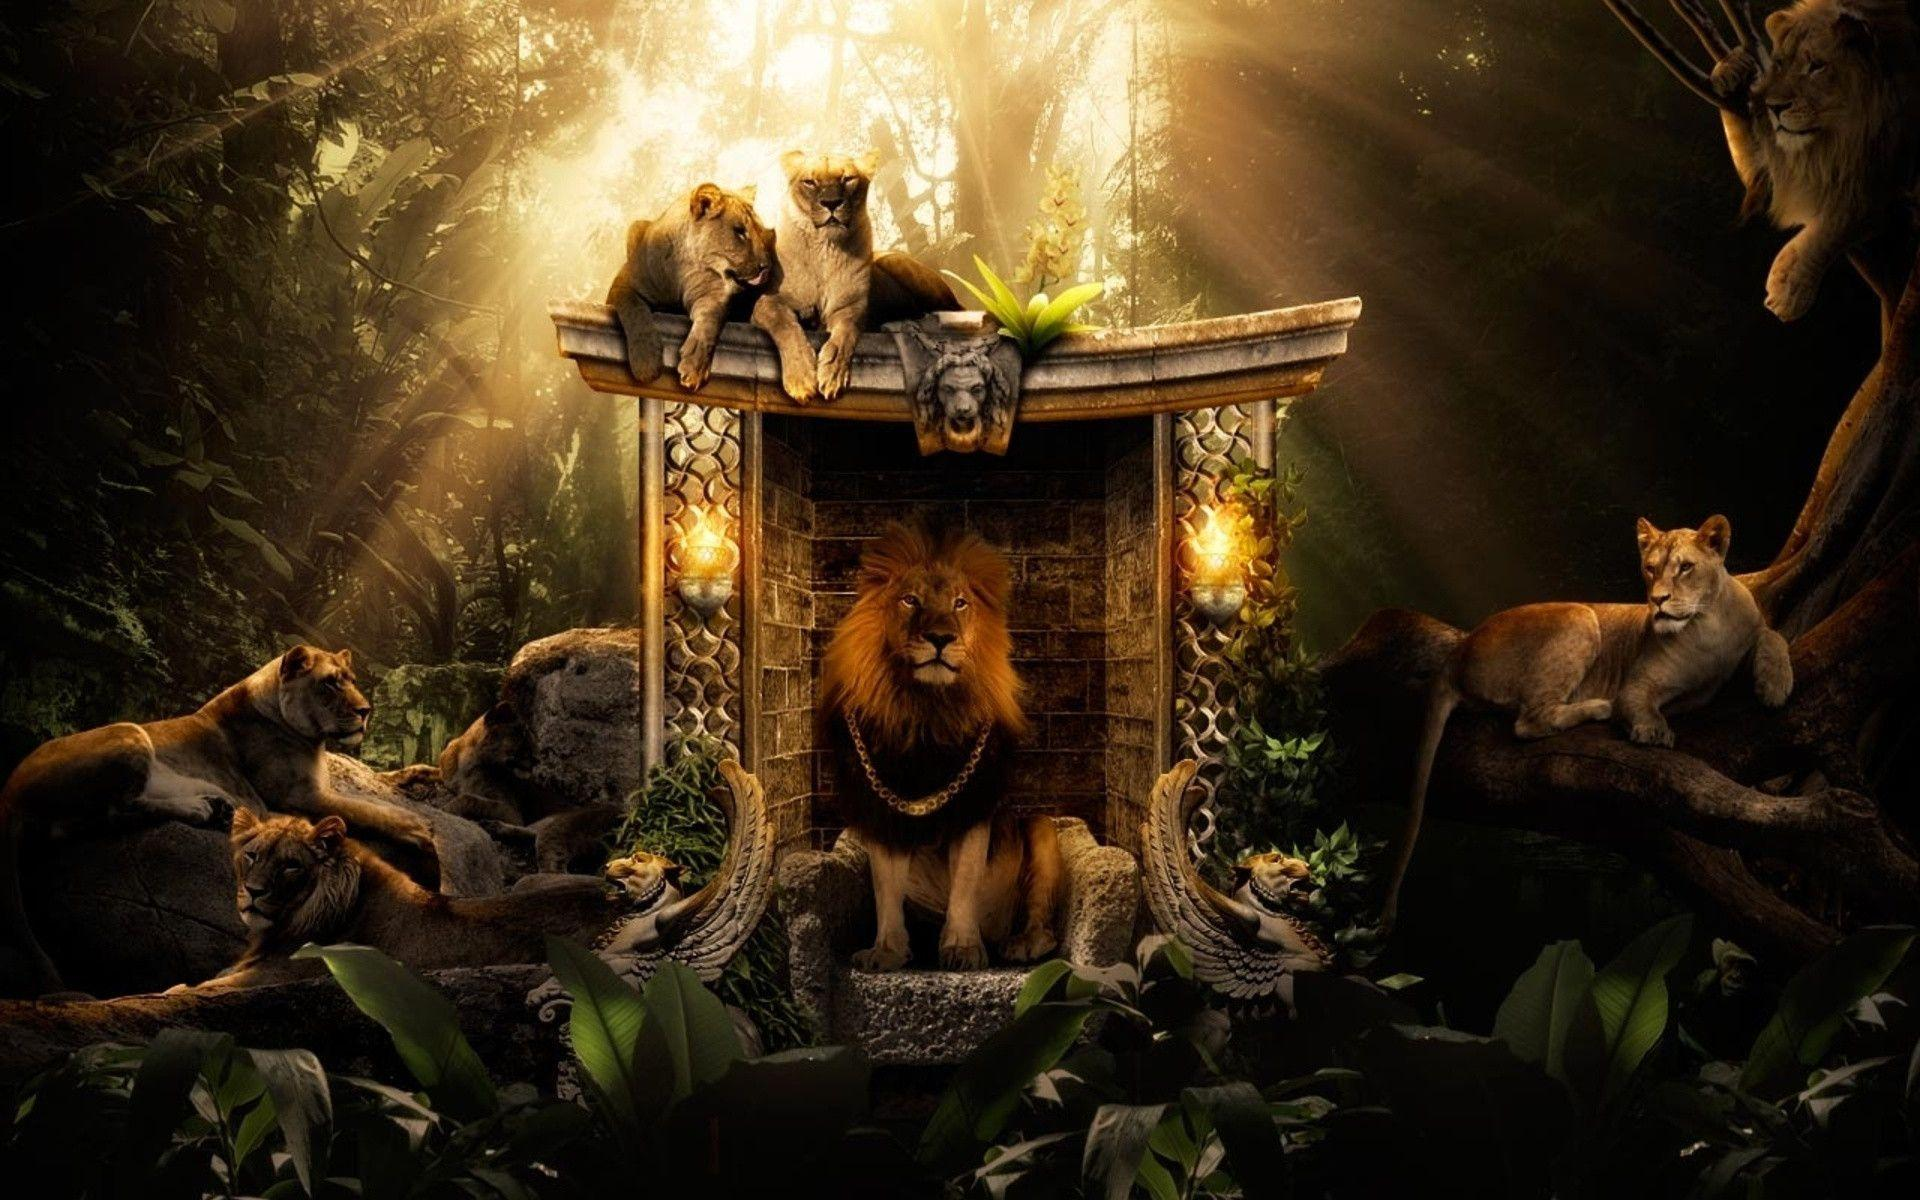 Lions Jungle Wallpapers